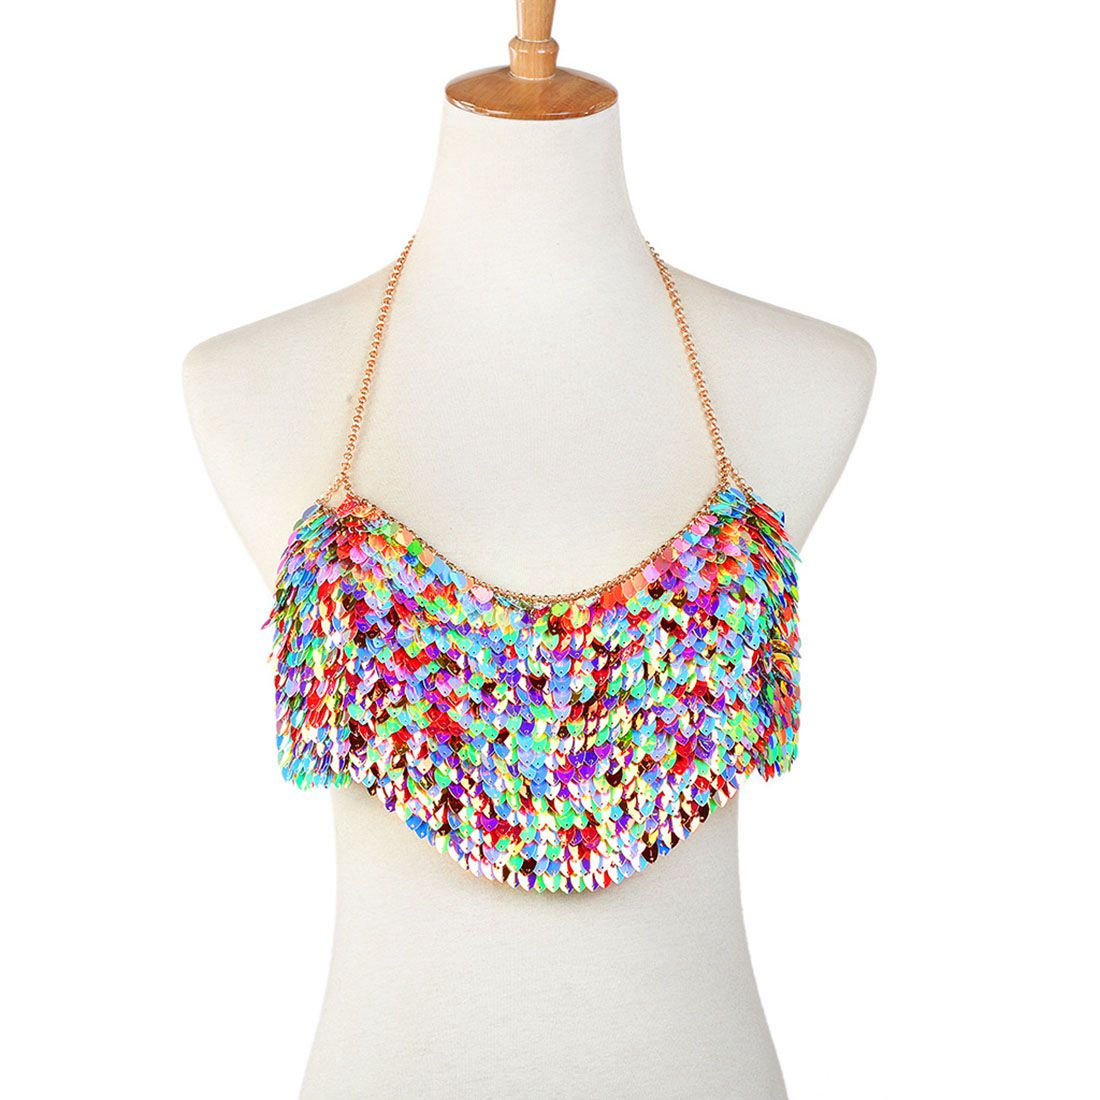 Colorful Sequins Bra Body Chain Crop Top Bra Halter Choker Lingerie Bikini Party Jewelry frill trim smock crop halter top